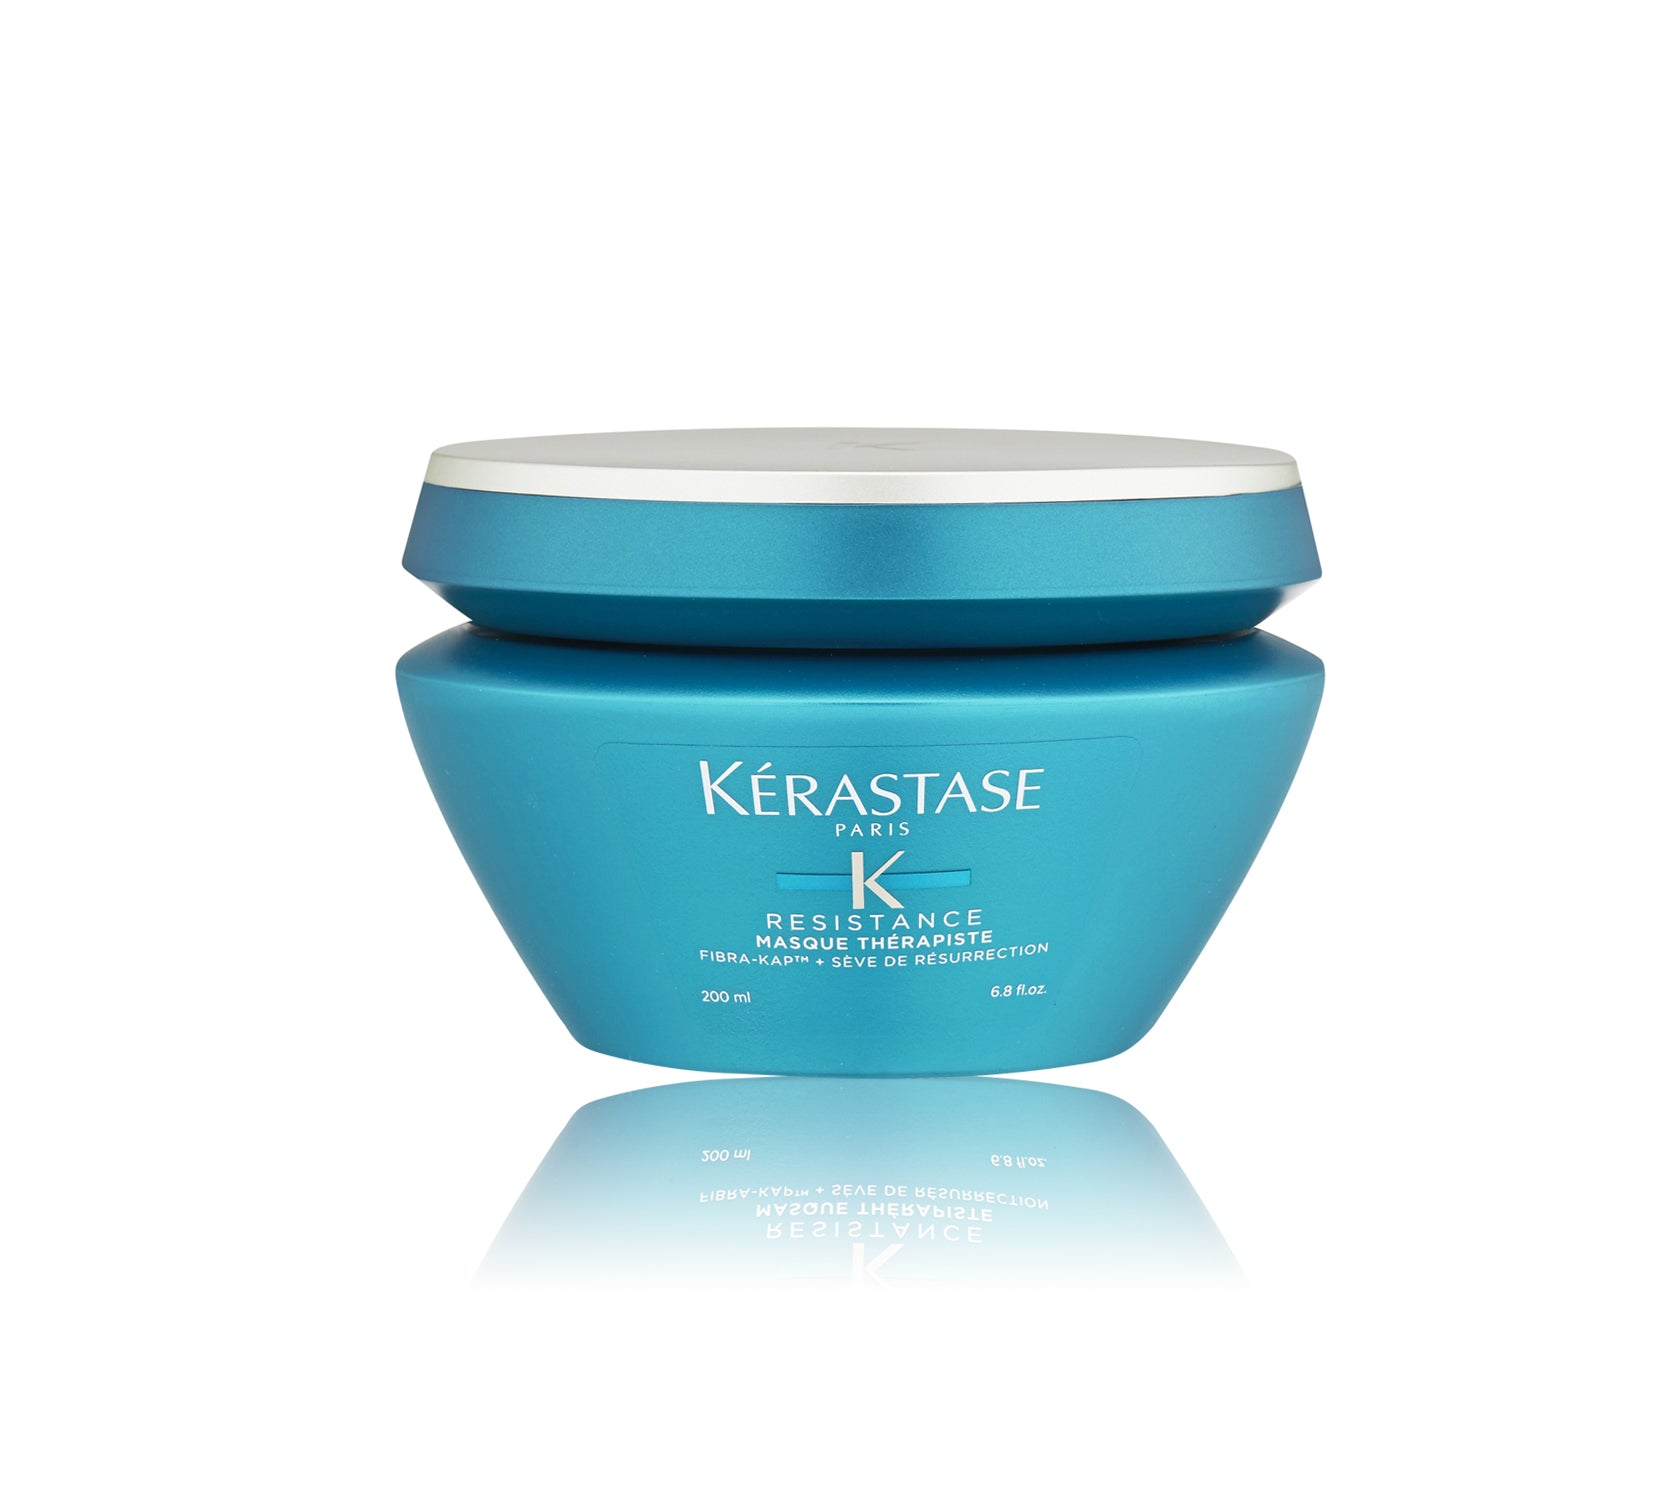 resistance-masque-therapiste-fiber-quality-renewal-masque-very-damaged-over-processed-thick-hair